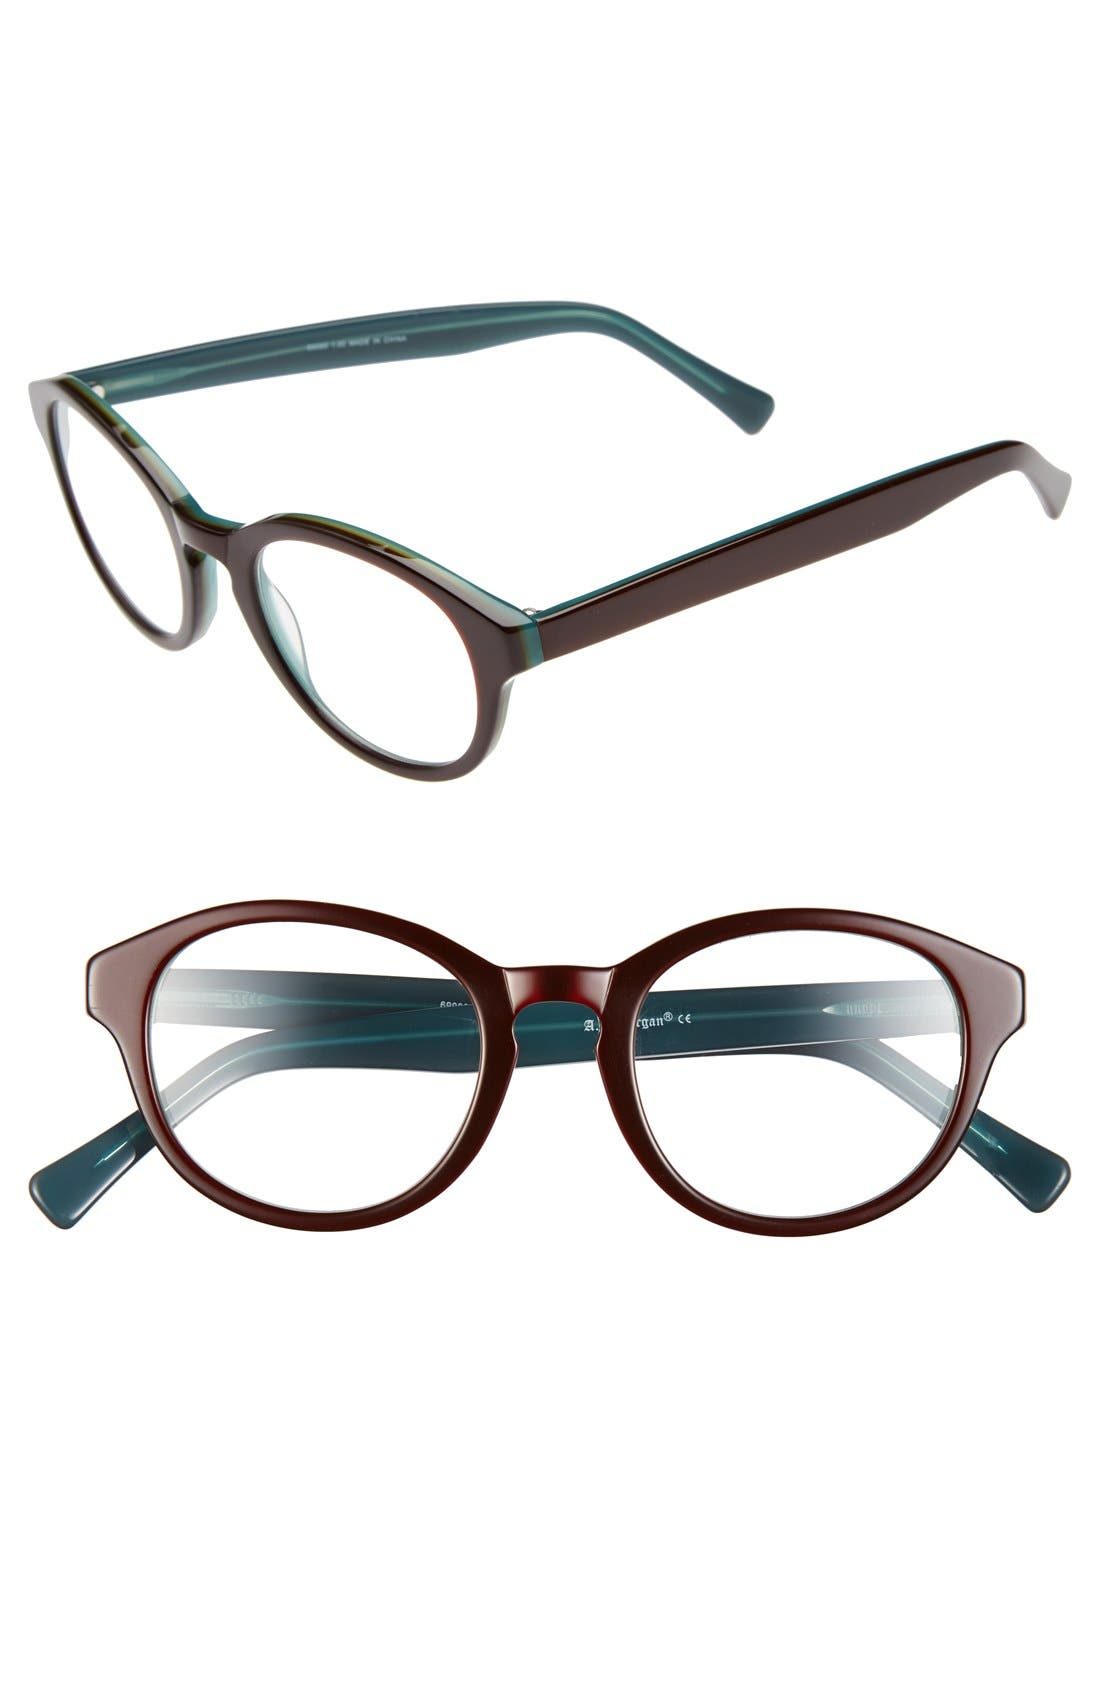 Main Image - A.J. Morgan 'Ohm' 58mm Reading Glasses